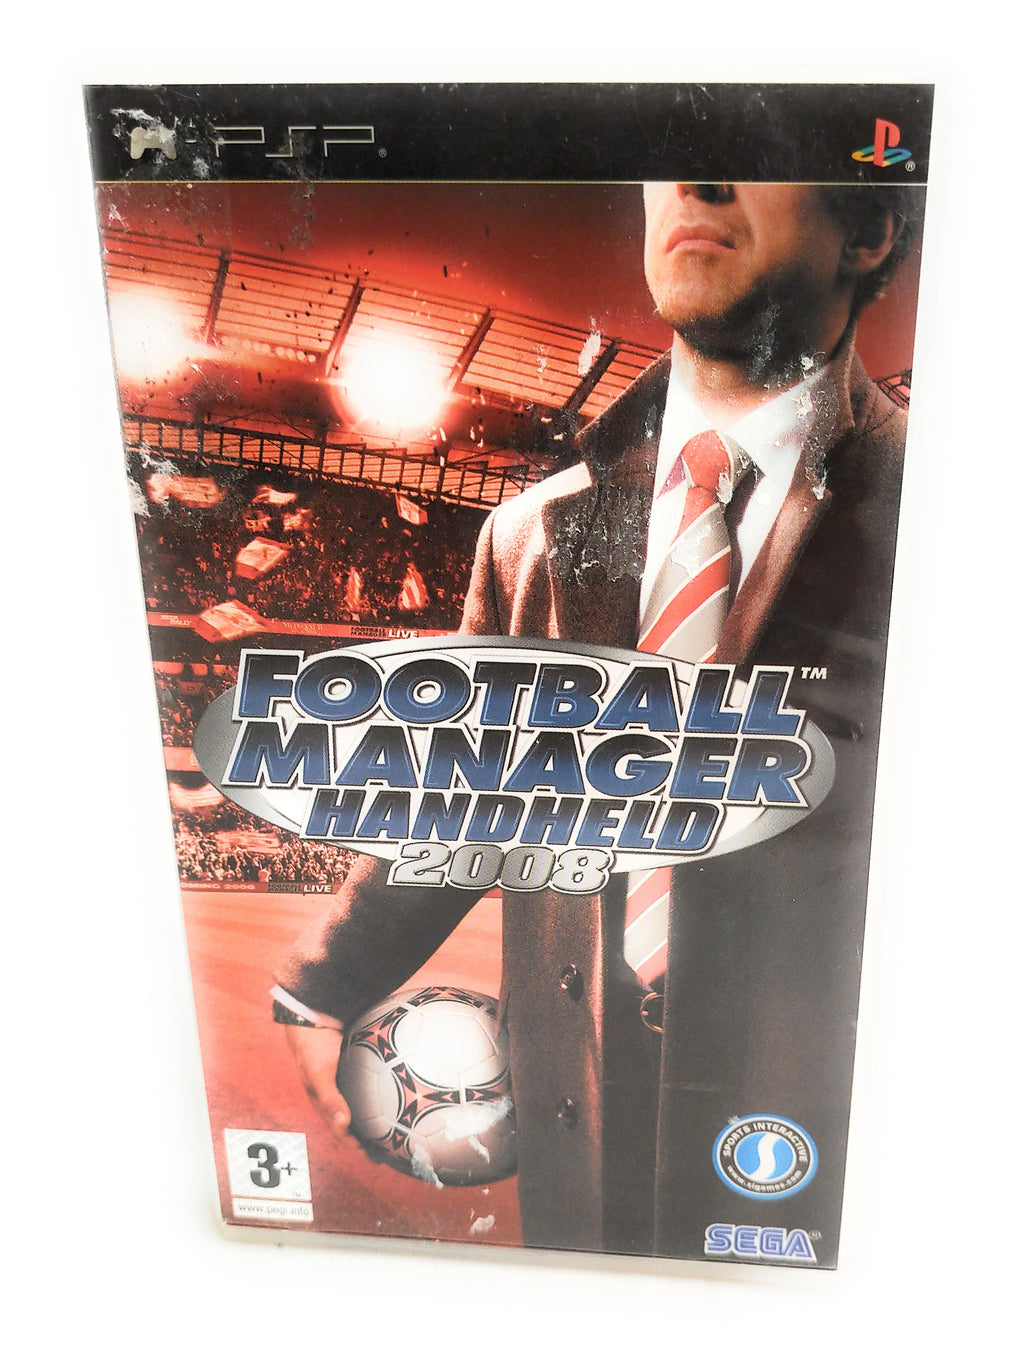 Football Manager Handheld 2008 - Sony PSP - Tested - Boxed with Instructions